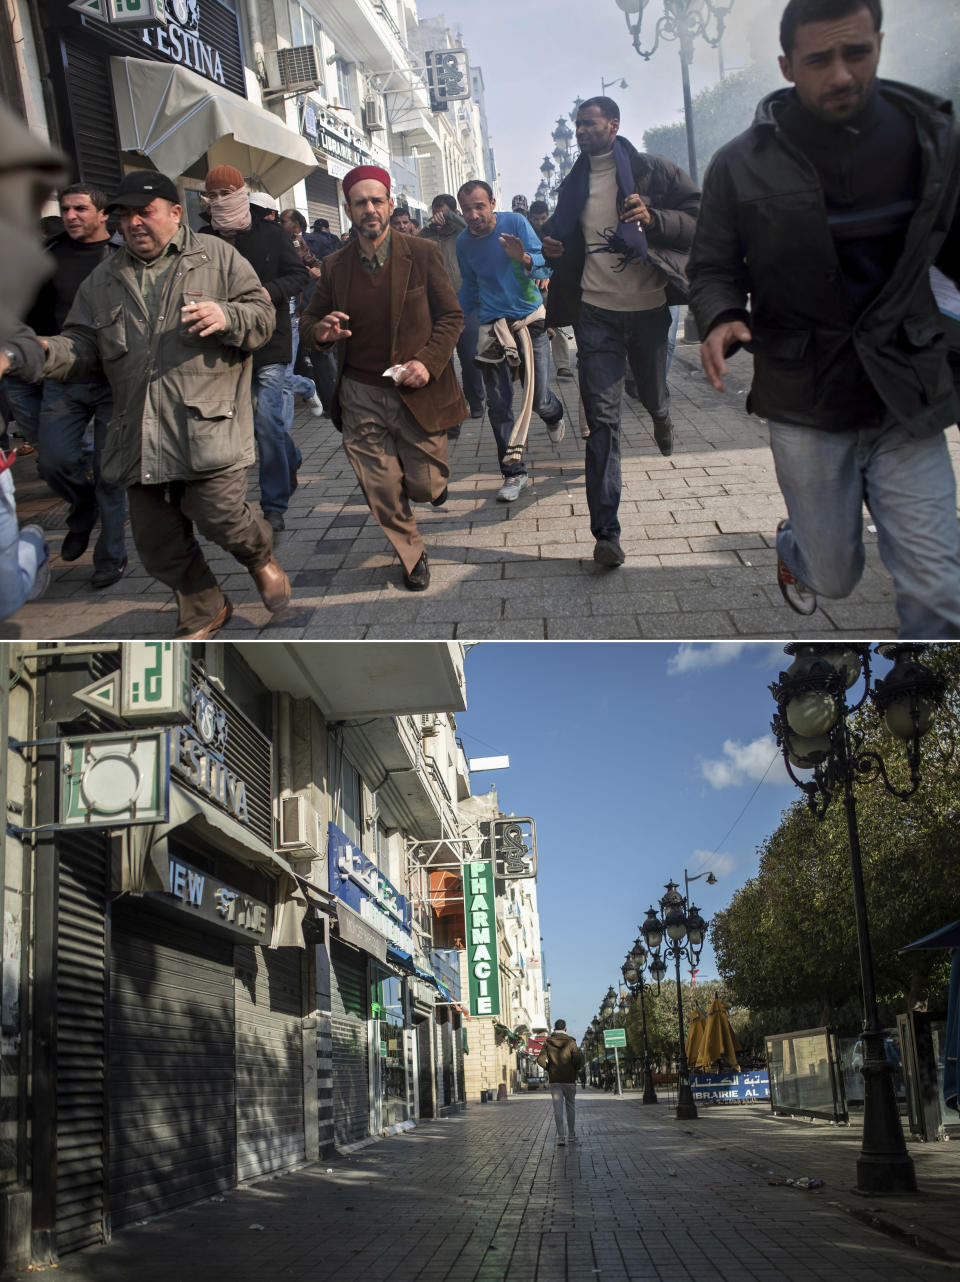 A combo image showing protestors running away from tear gas during a demonstration against former Tunisian President Zine El Abidine Ben Ali in the center of Tunis, Monday, Jan. 17. 2011, top, and a man walking past closed shops in Tunis' landmark Avenue Habib Bourgiba, during a national lockdown after a surge in Covid-19 cases, in Tunis, Thursday, Jan. 14, 2021. Tunisia is commemorating the 10th anniversary since the flight into exile of its iron-fisted leader, Zine El Abidine Ben Ali, pushed from power in a popular revolt that foreshadowed the so-called Arab Spring. But there will be no festive celebrations Thursday marking the revolution in this North African nation, ordered into lockdown to contain the coronavirus. (AP Photo/Thibault Camus, Mosa'ab Elshamy)